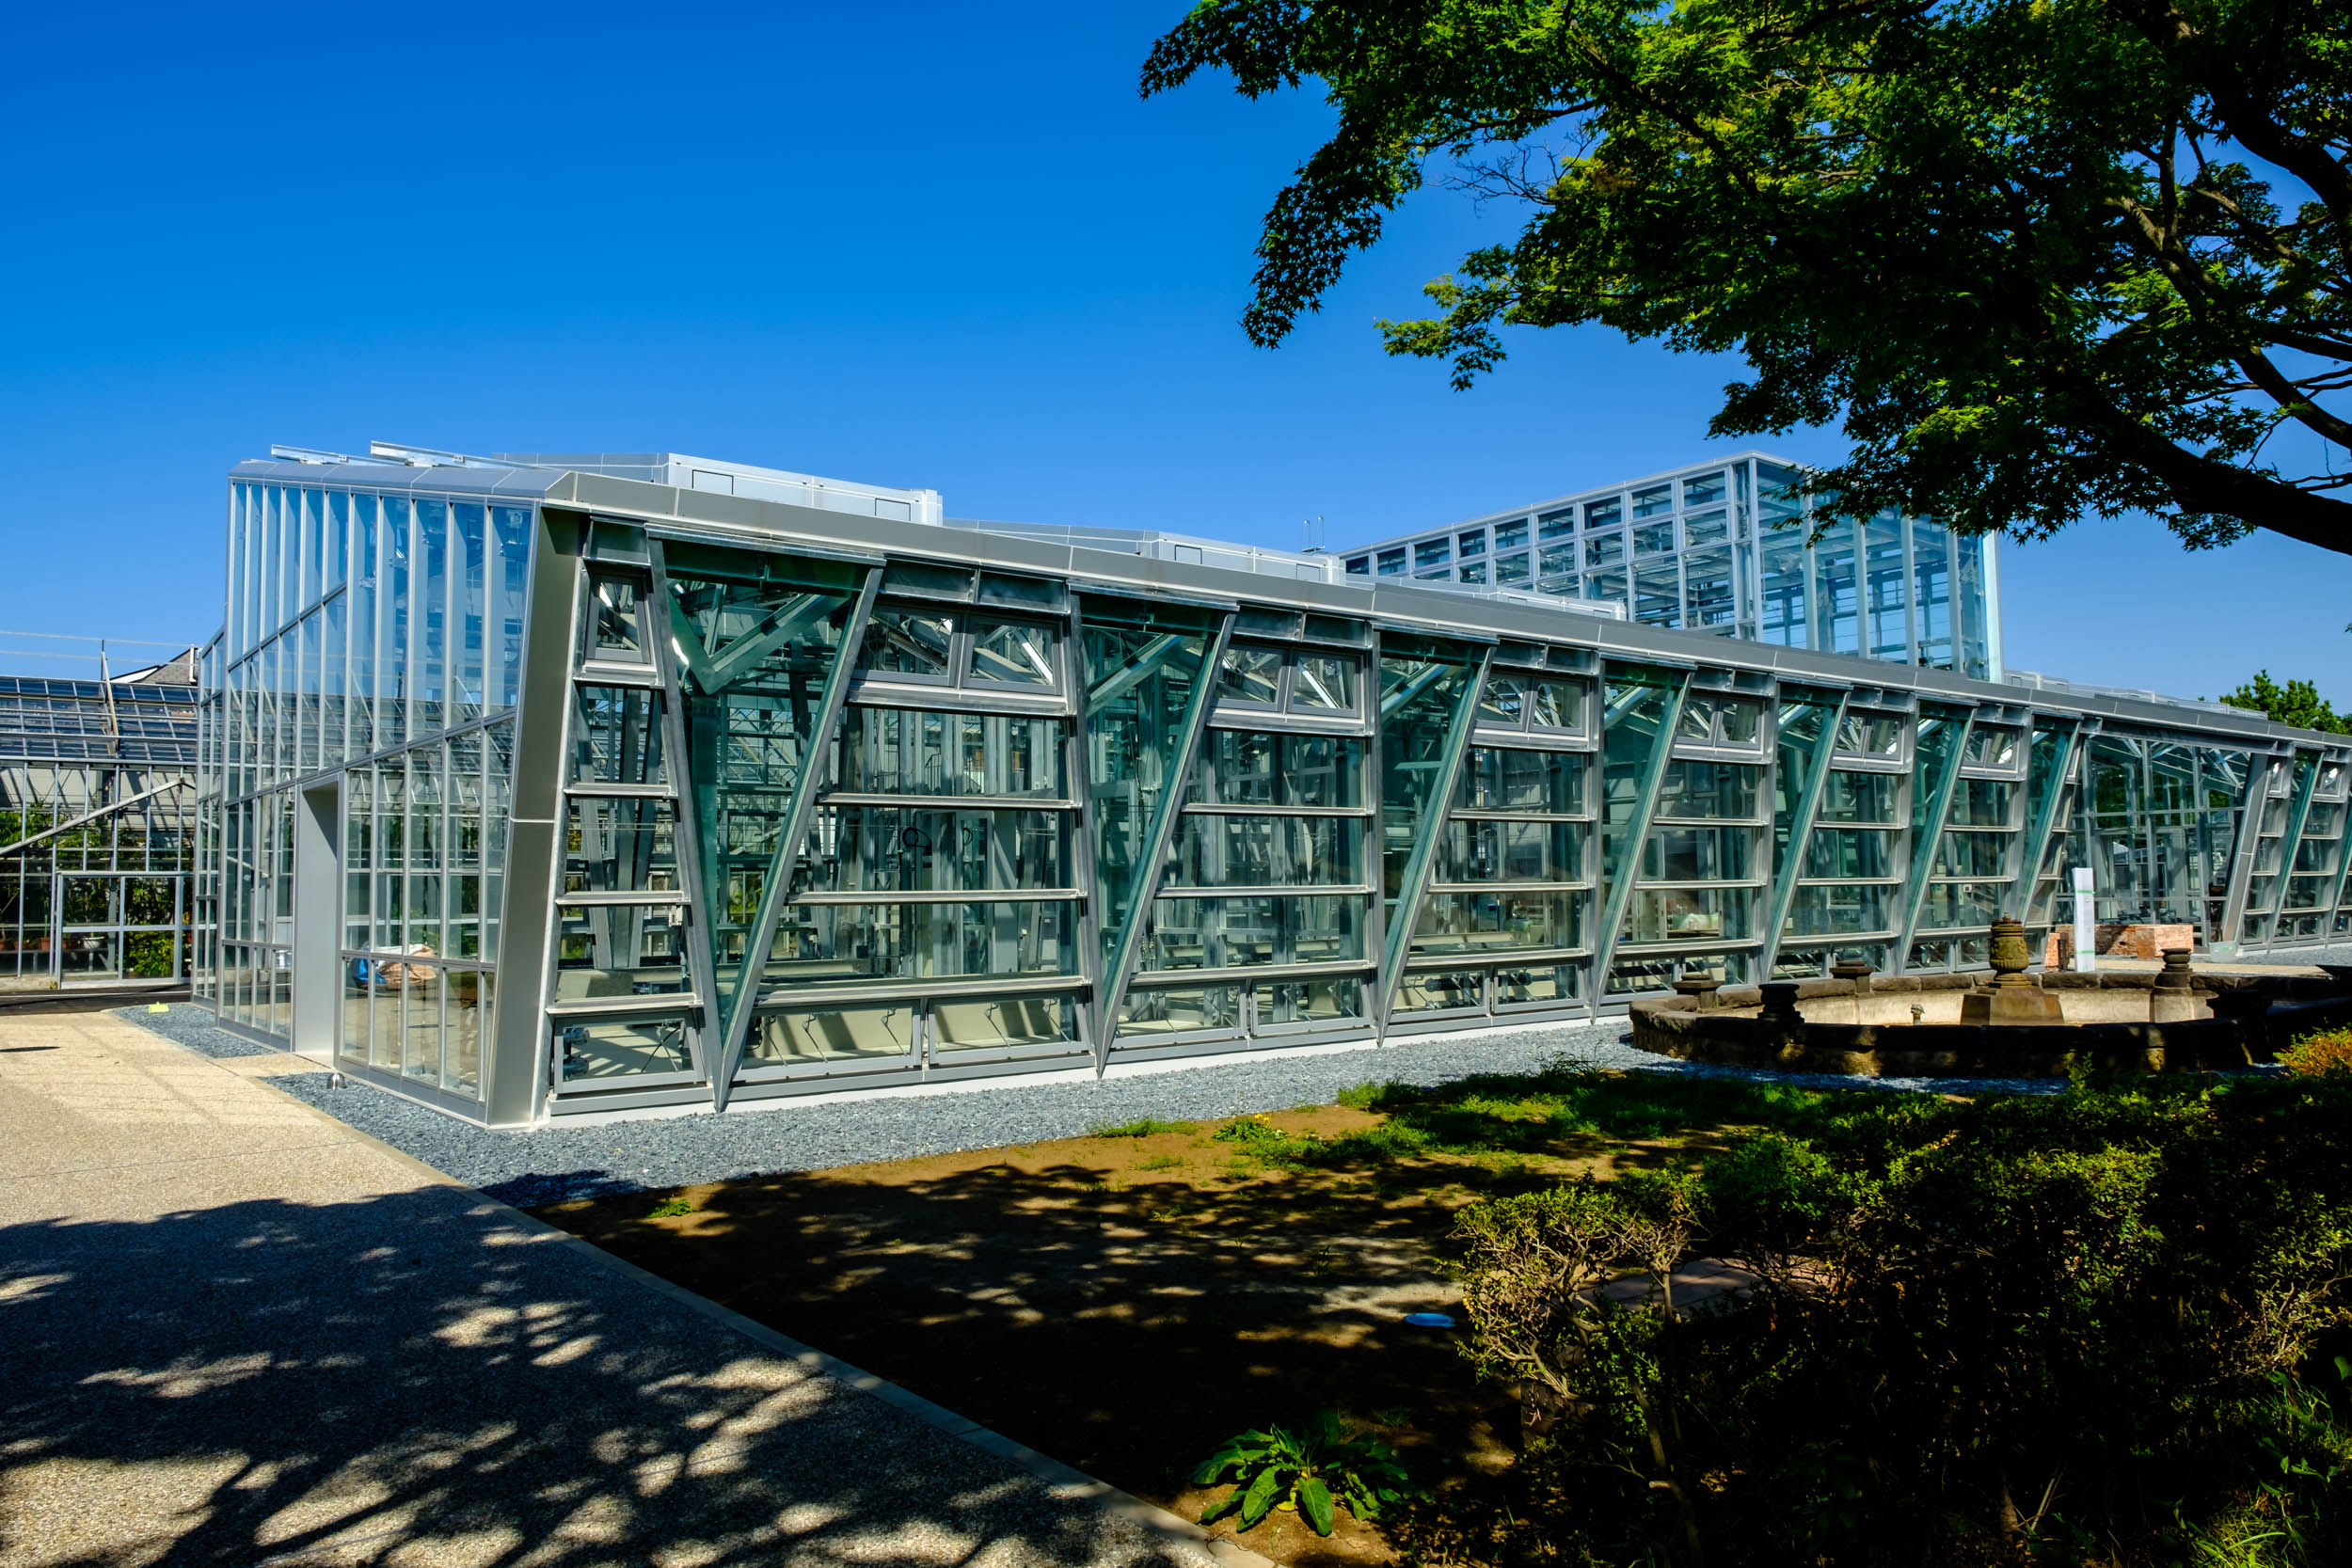 The new greenhouse at Koishikawa Botanical Gardens with the old pool at front